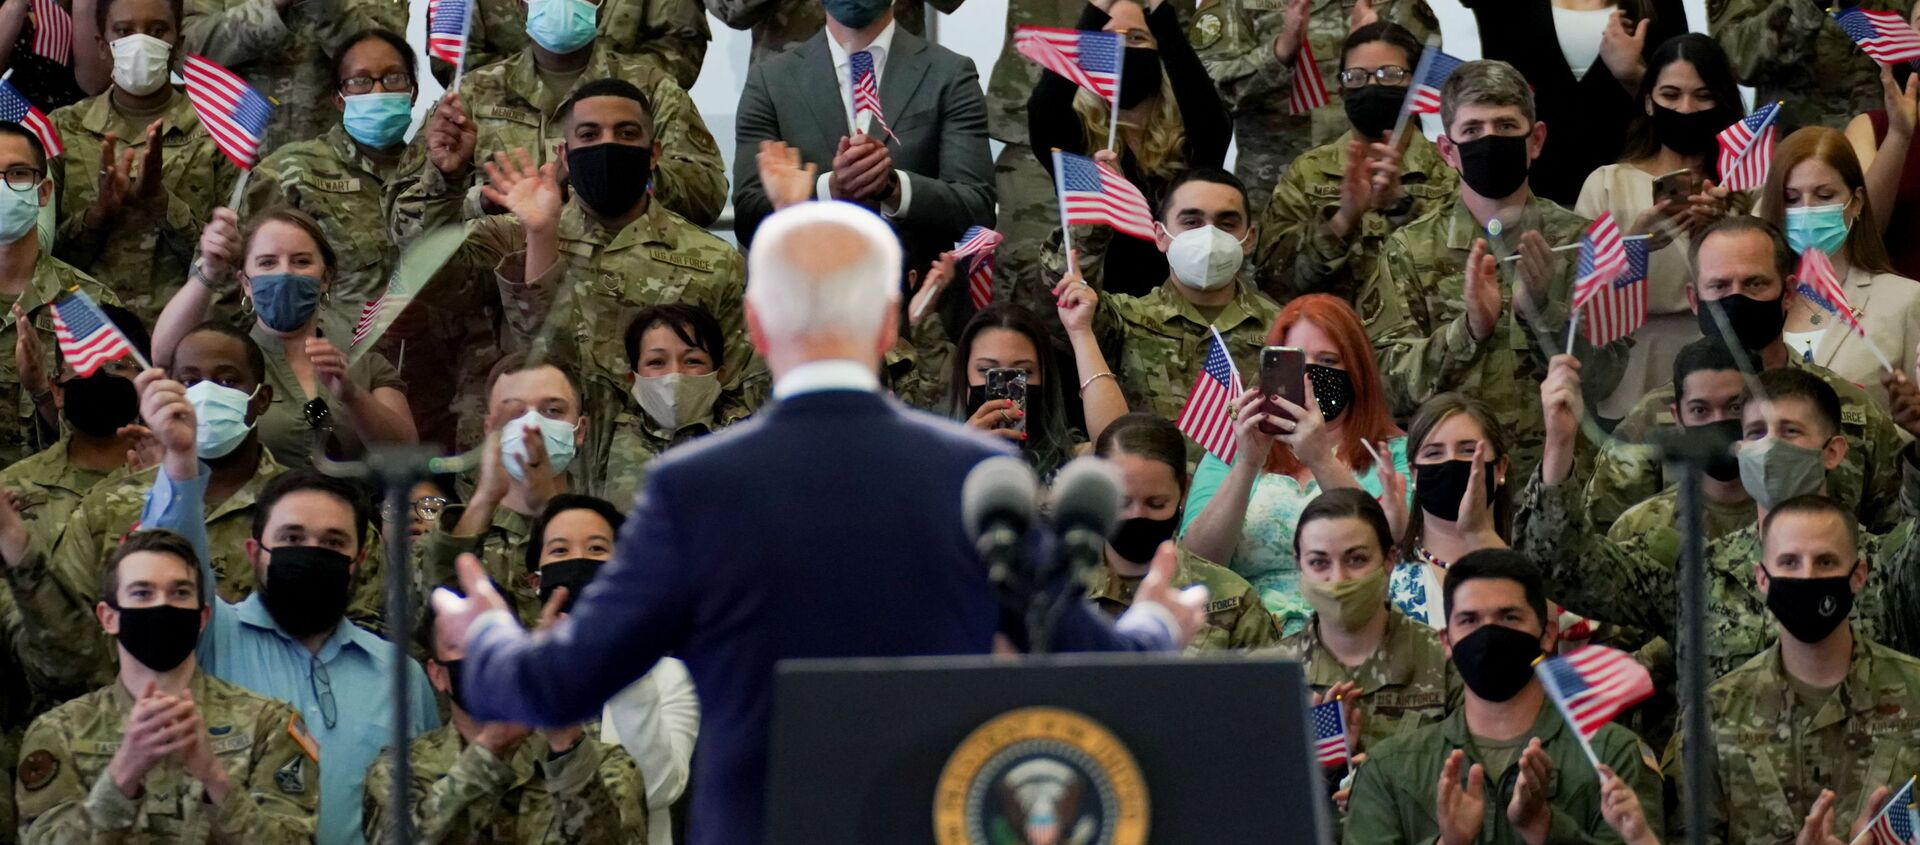 U.S. President Joe Biden delivers remarks to U.S. Air Force personnel and their families stationed at  RAF Mildenhall, ahead of the G7 Summit, near Mildenhall, Britain June 9, 2021. - Sputnik International, 1920, 09.06.2021